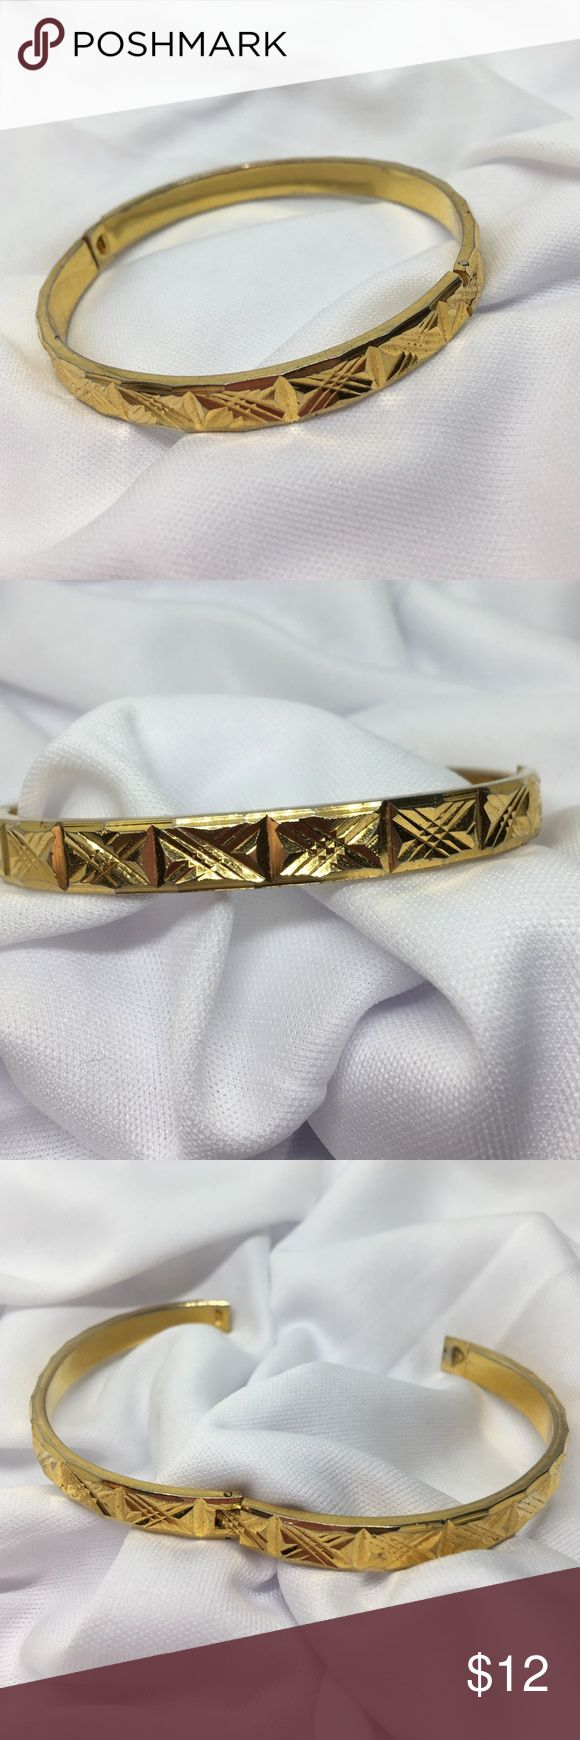 """🆕Vintage 8"""" Etched Gold Hinged Bangle Bracelet An 8"""" gold bracelet with lots of Etched detail. Hinged as shown; easy on, easy off! Purchased at a flea market as vintage in 1985, and stored until now. In excellent vintage condition, only very minor plating wear. Vintage Jewelry Bracelets"""